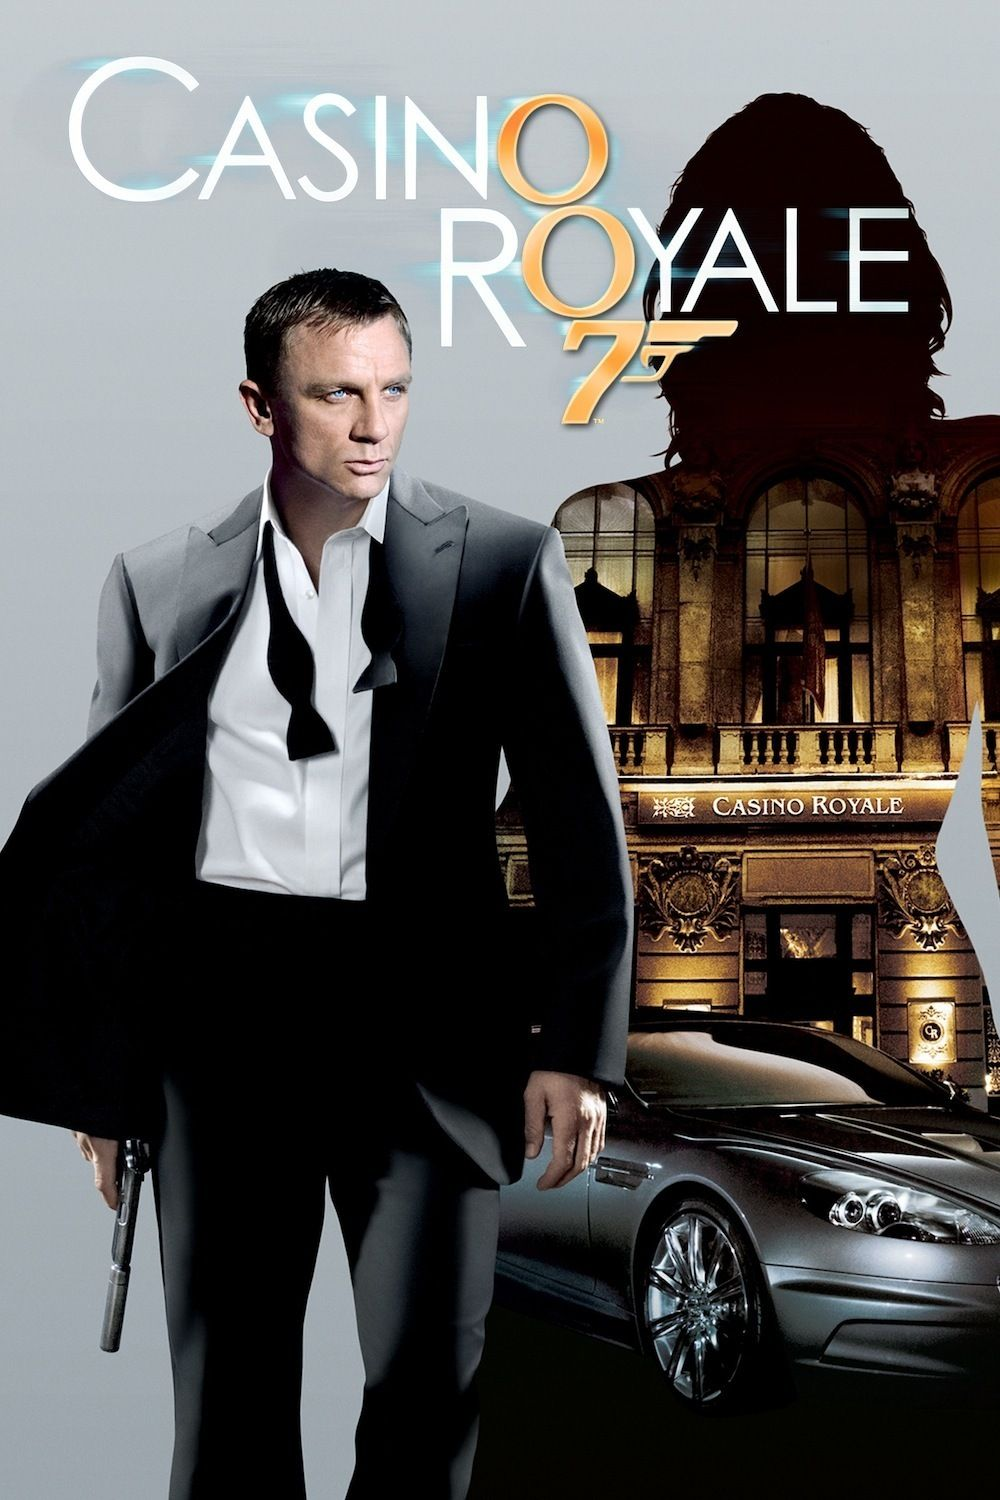 James bond casino royale 2006 watch online free golden eagle charitable casino gaming centre